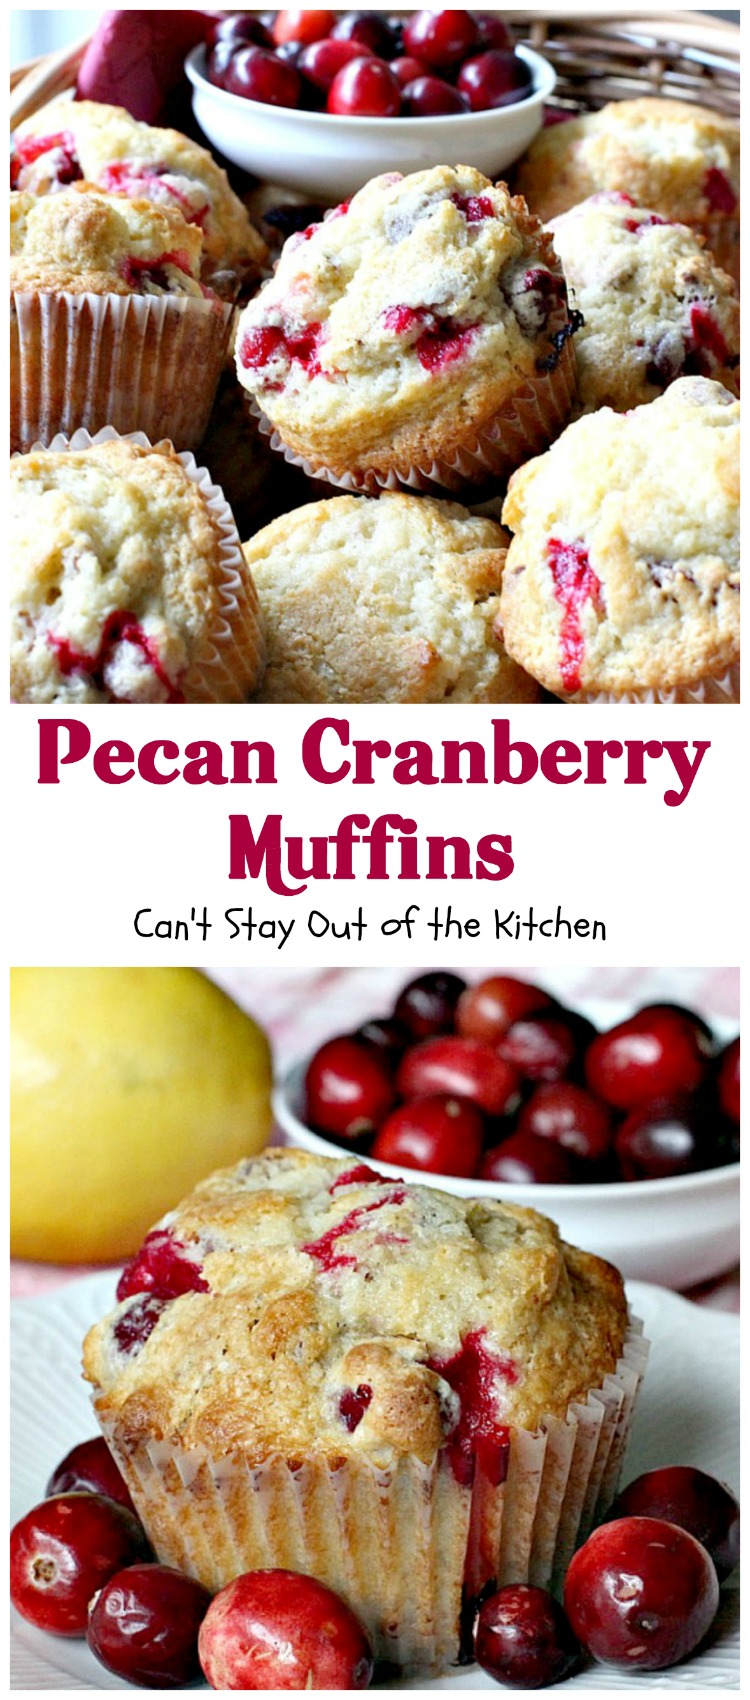 Raspberry Lemon Streusel Muffins - Can't Stay Out of the Kitchen